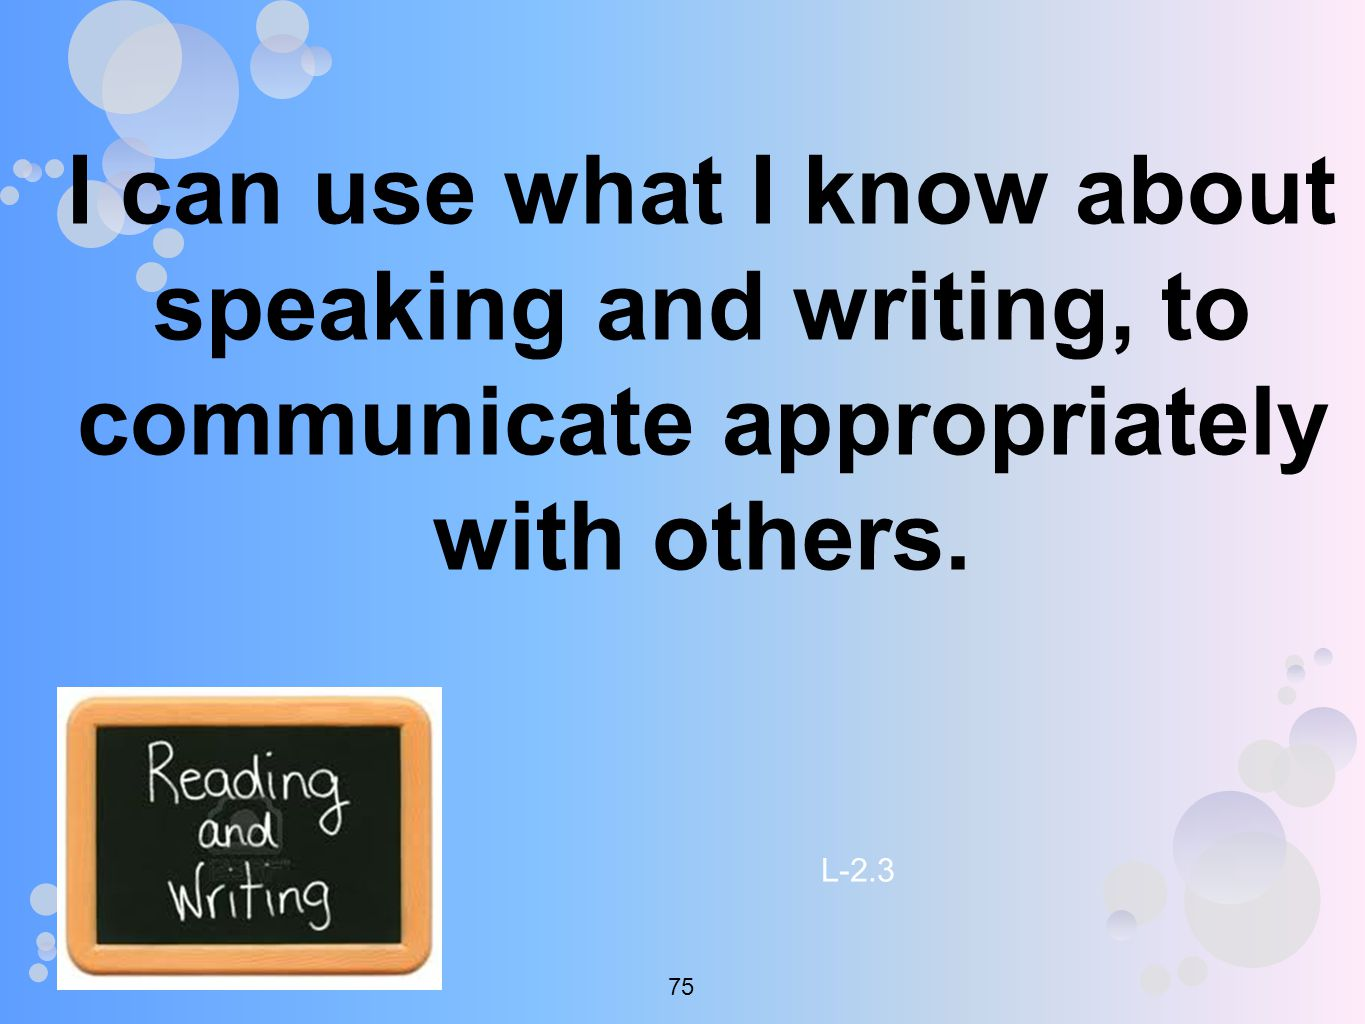 I can use what I know about speaking and writing, to communicate appropriately with others.